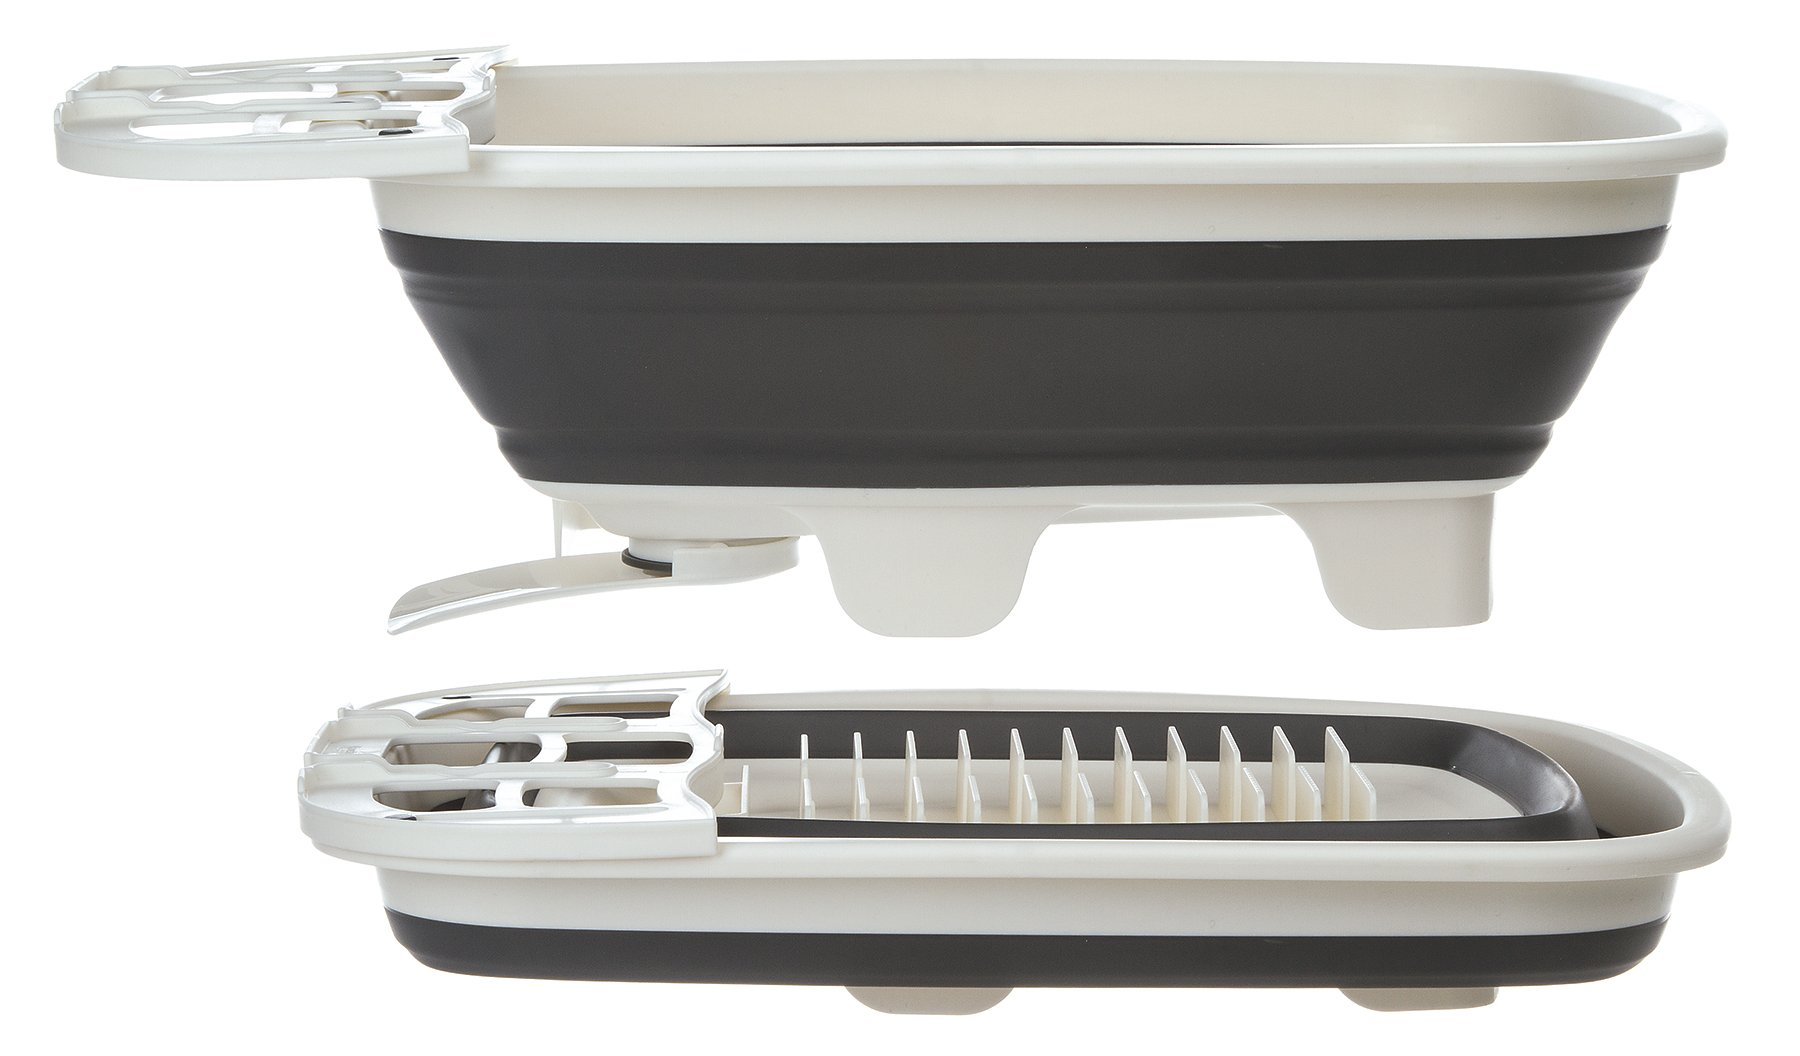 Prep Solutions by Progressive Swivel Spout Collapsible Dish Drainer PS-202 Large Dish Tub, Pop Up Portable Dish Tub, Washing Basin